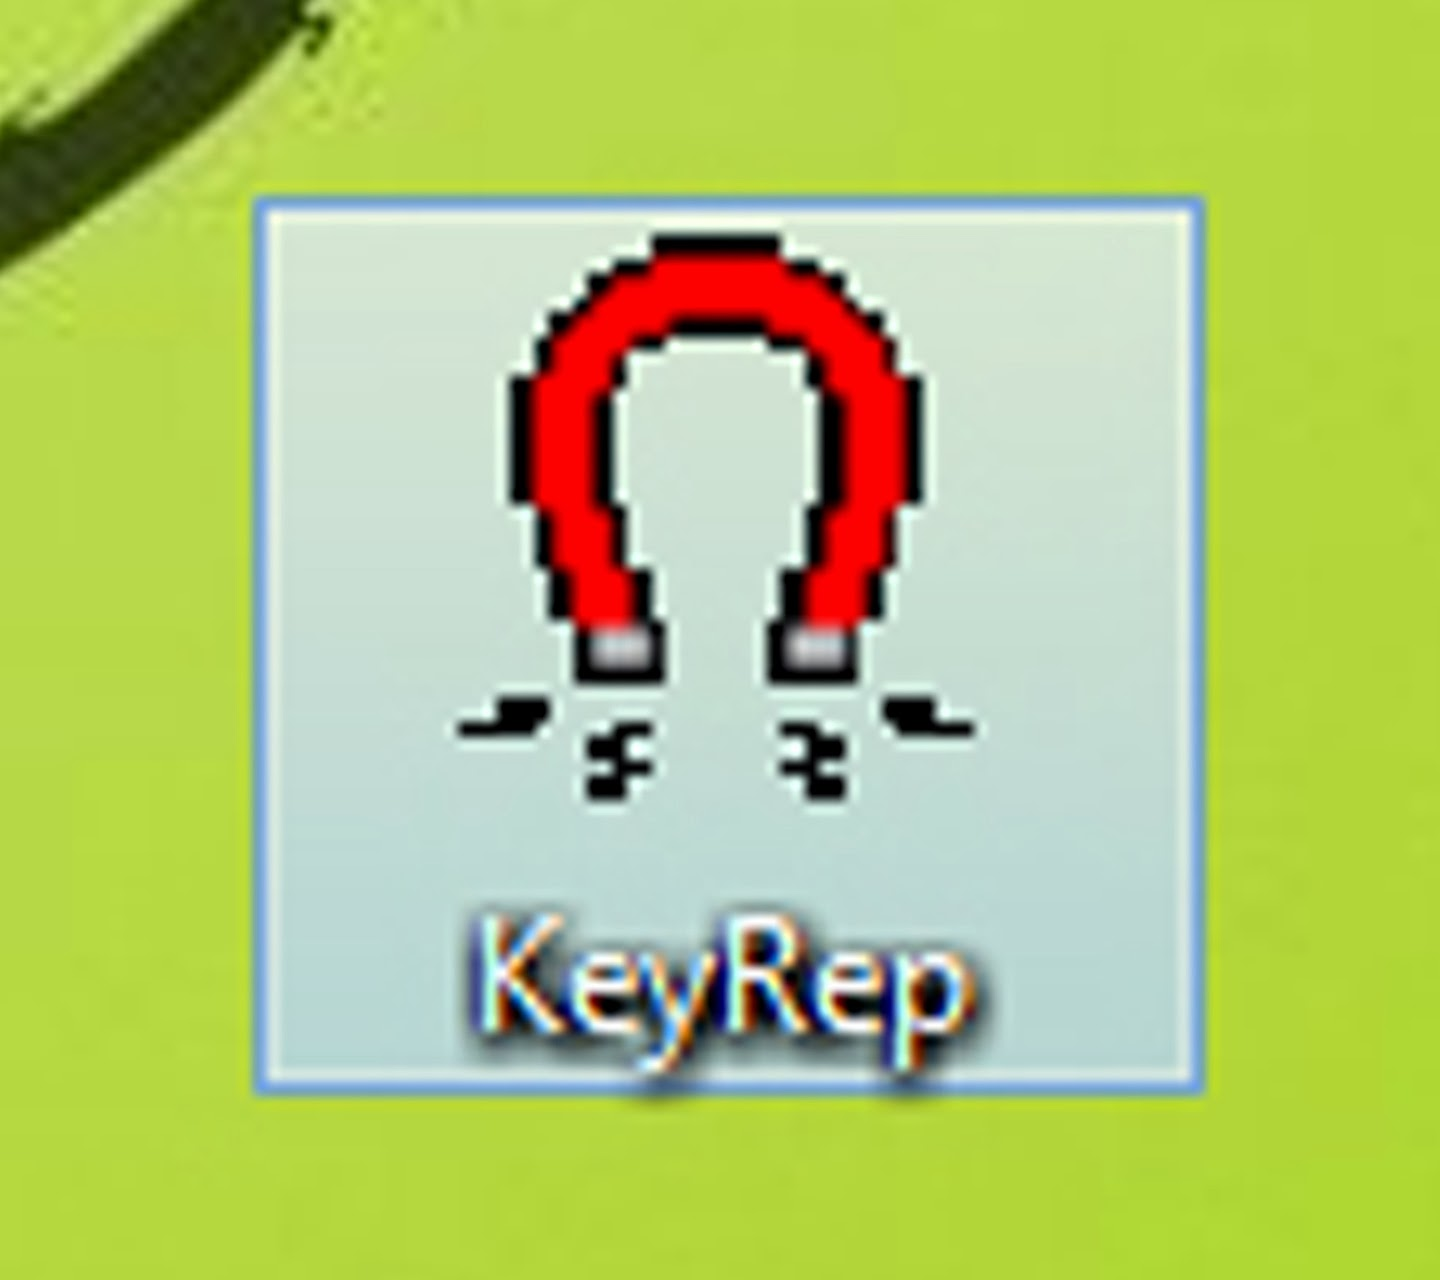 keyrep sinhala typing software download